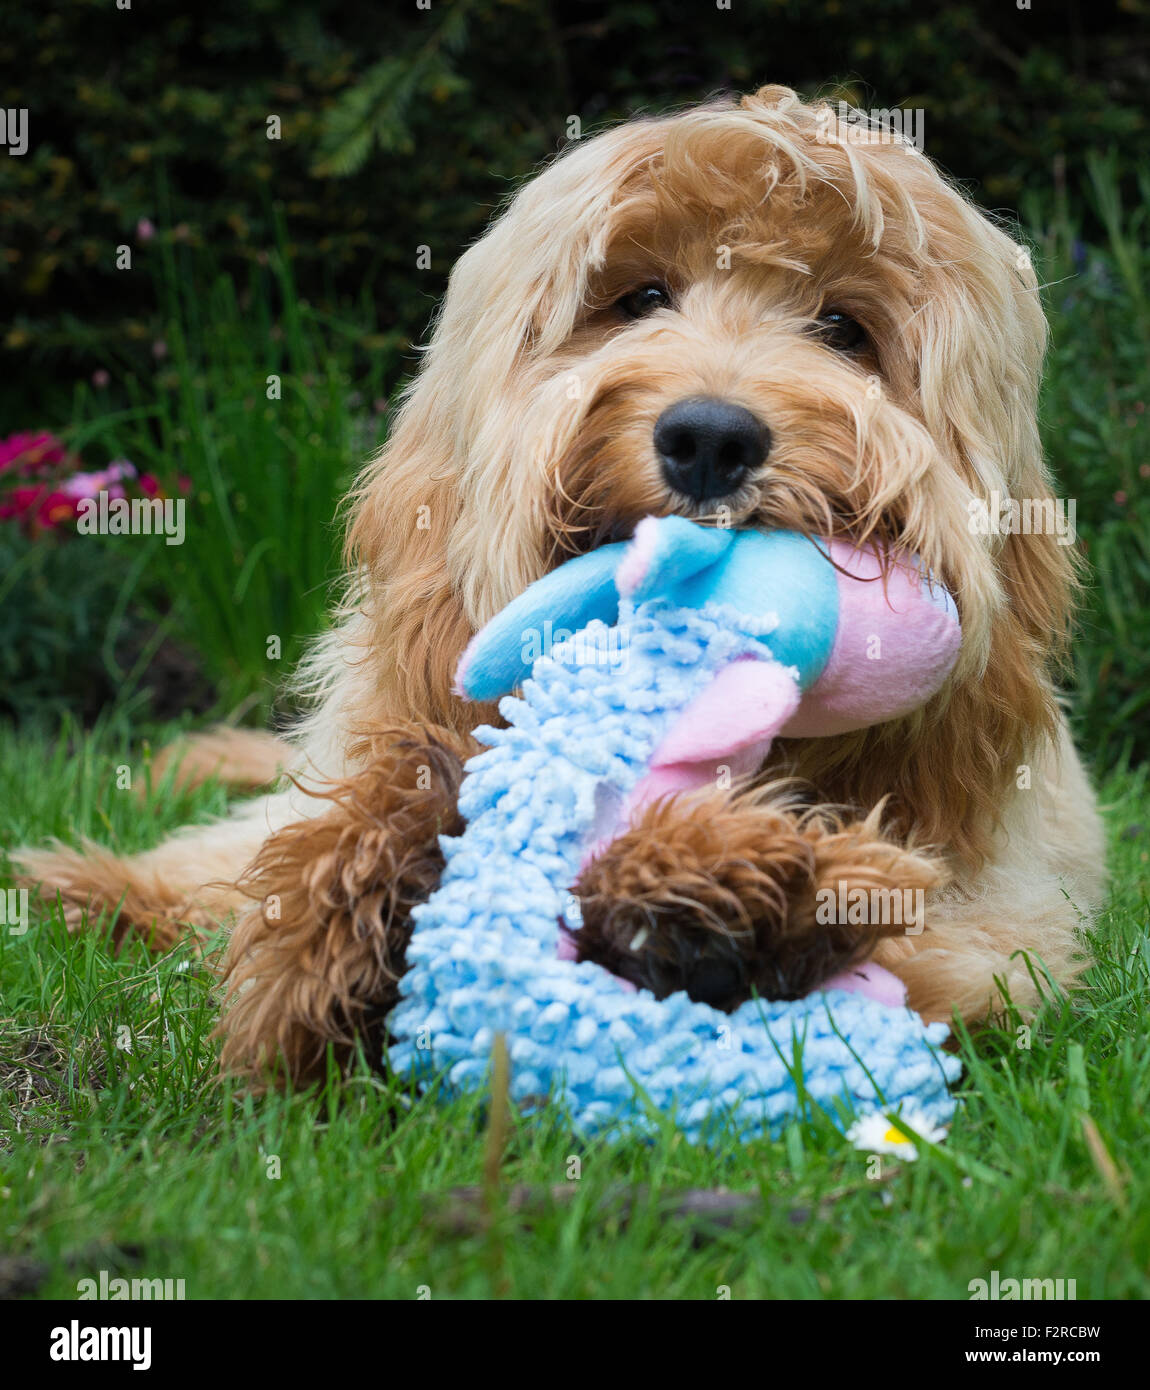 Cute dog chewing a toy - Stock Image